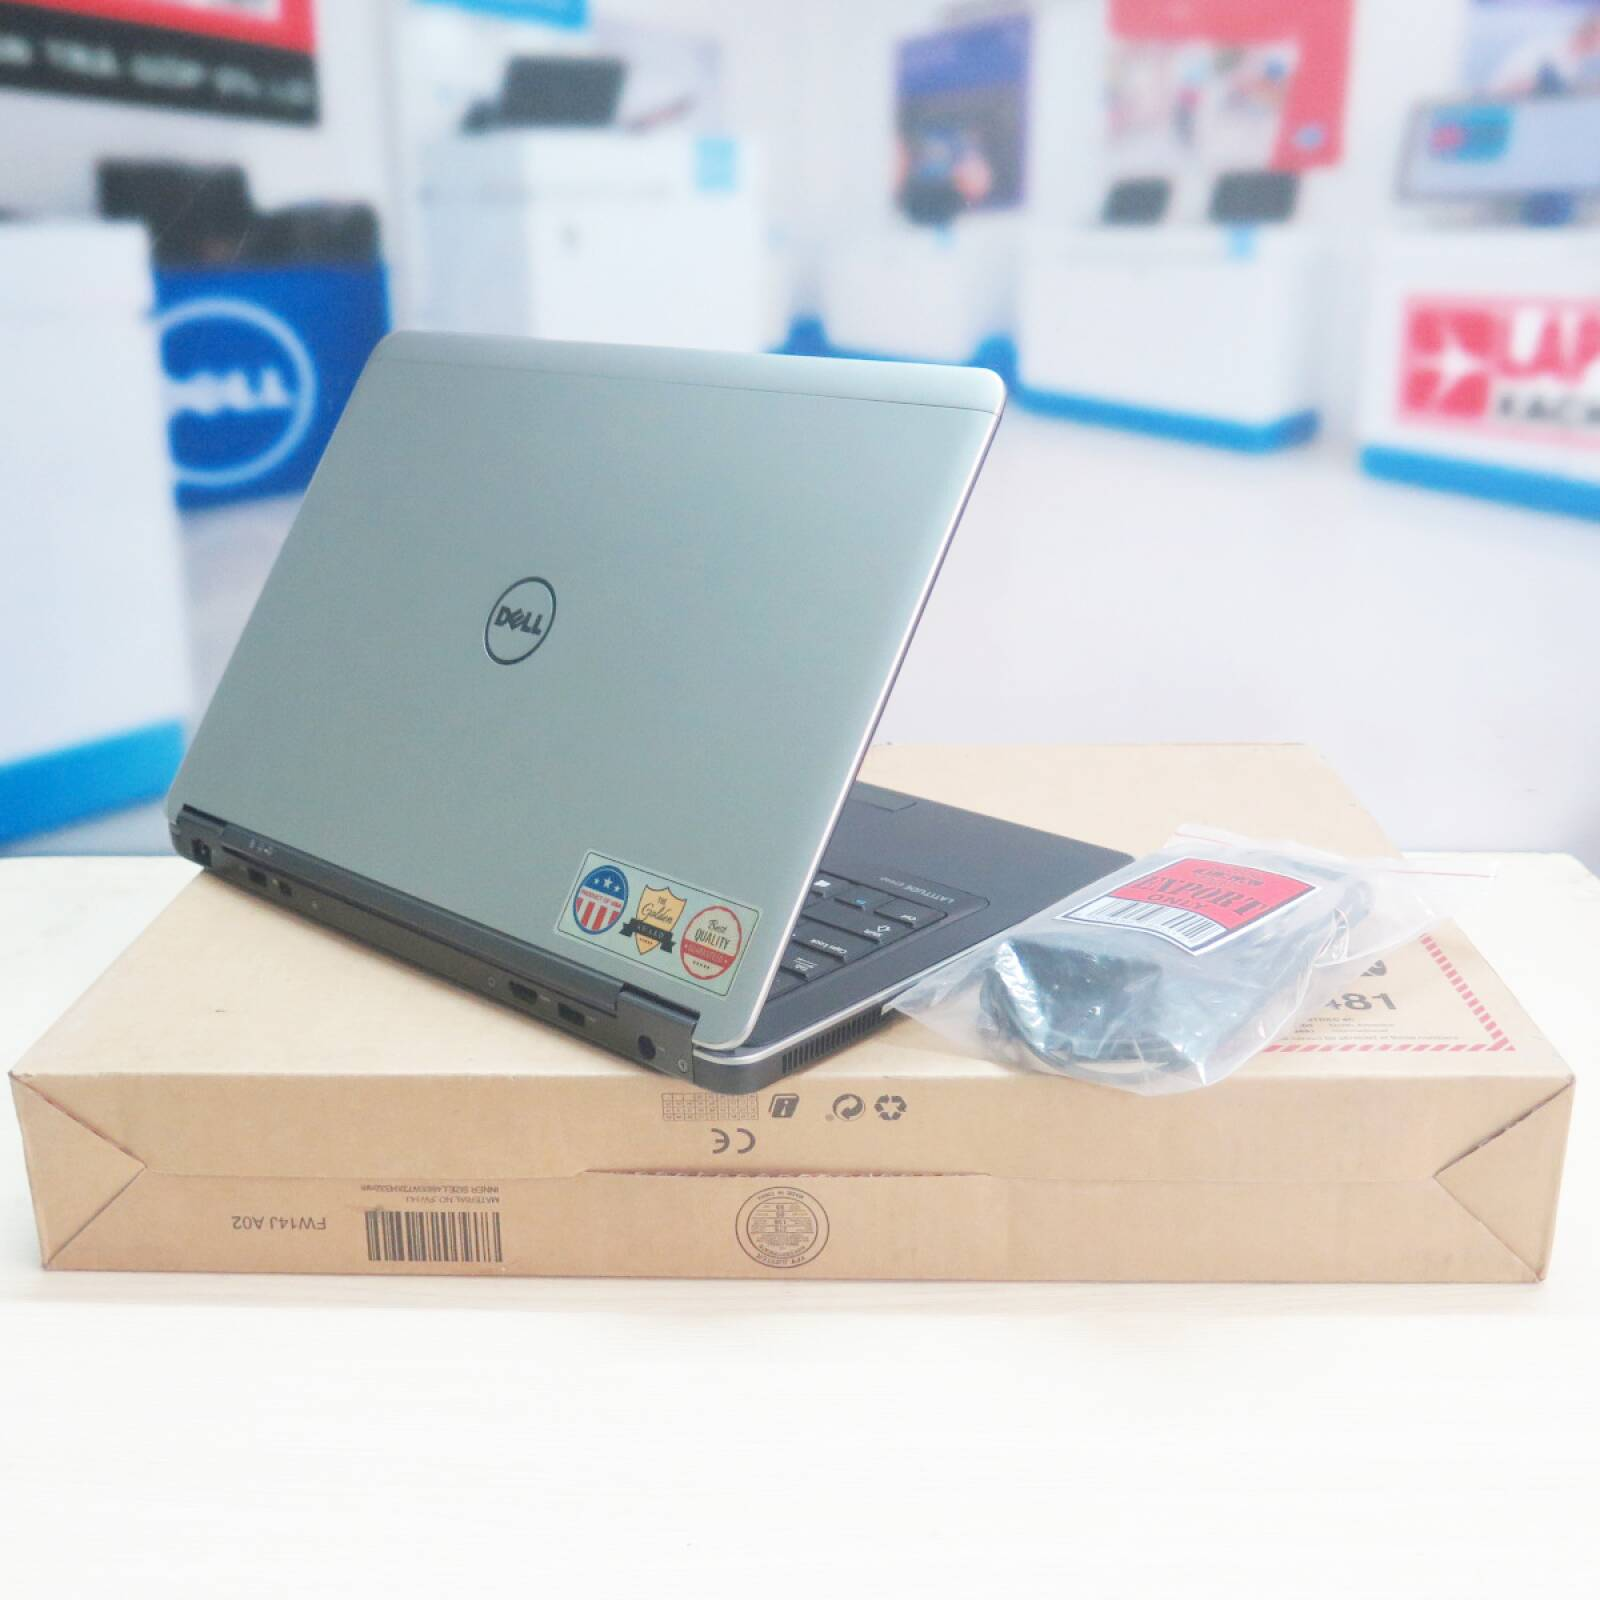 Dell Latitude E7440 - Laptopxachtayshop.com